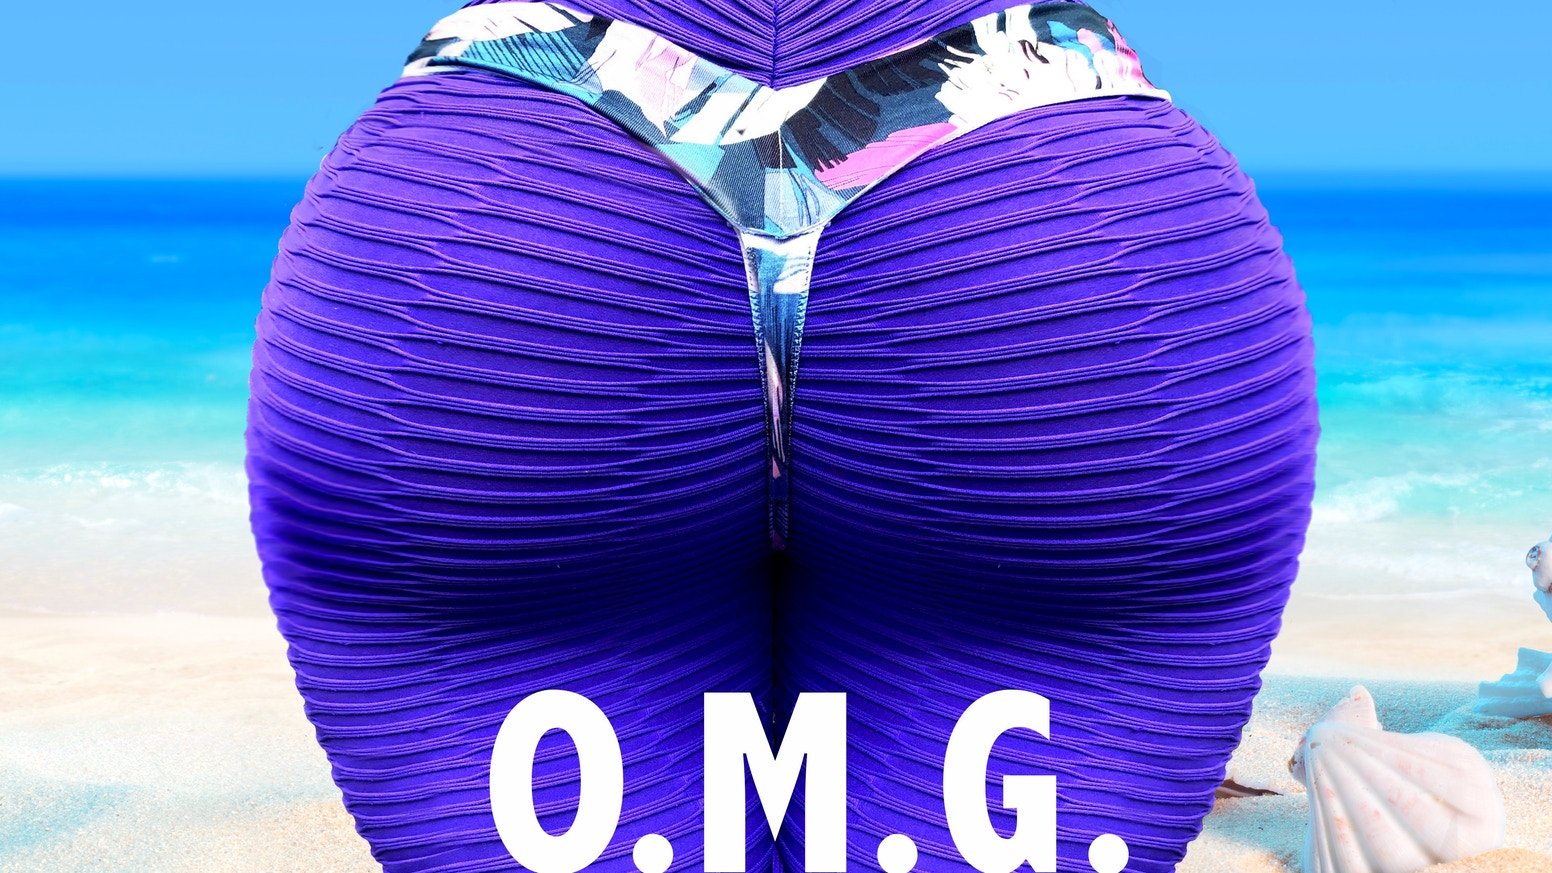 The O.M.G. Buttress Pillow is coming to a face near you. Badder, thicker and more Bootylicious than ever.